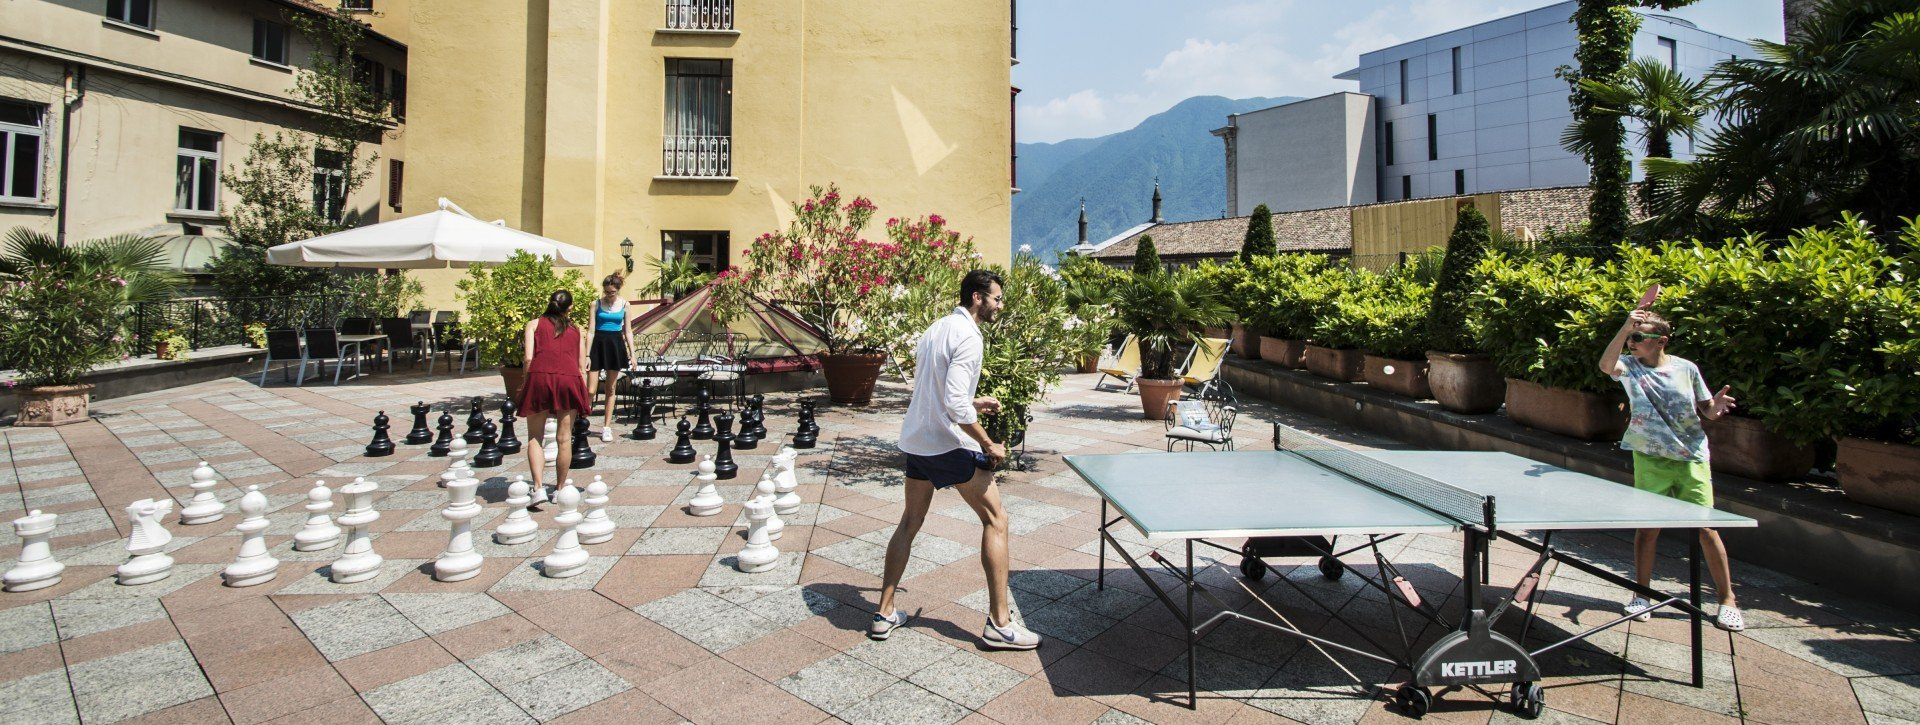 Terrace with ping pong and street chess